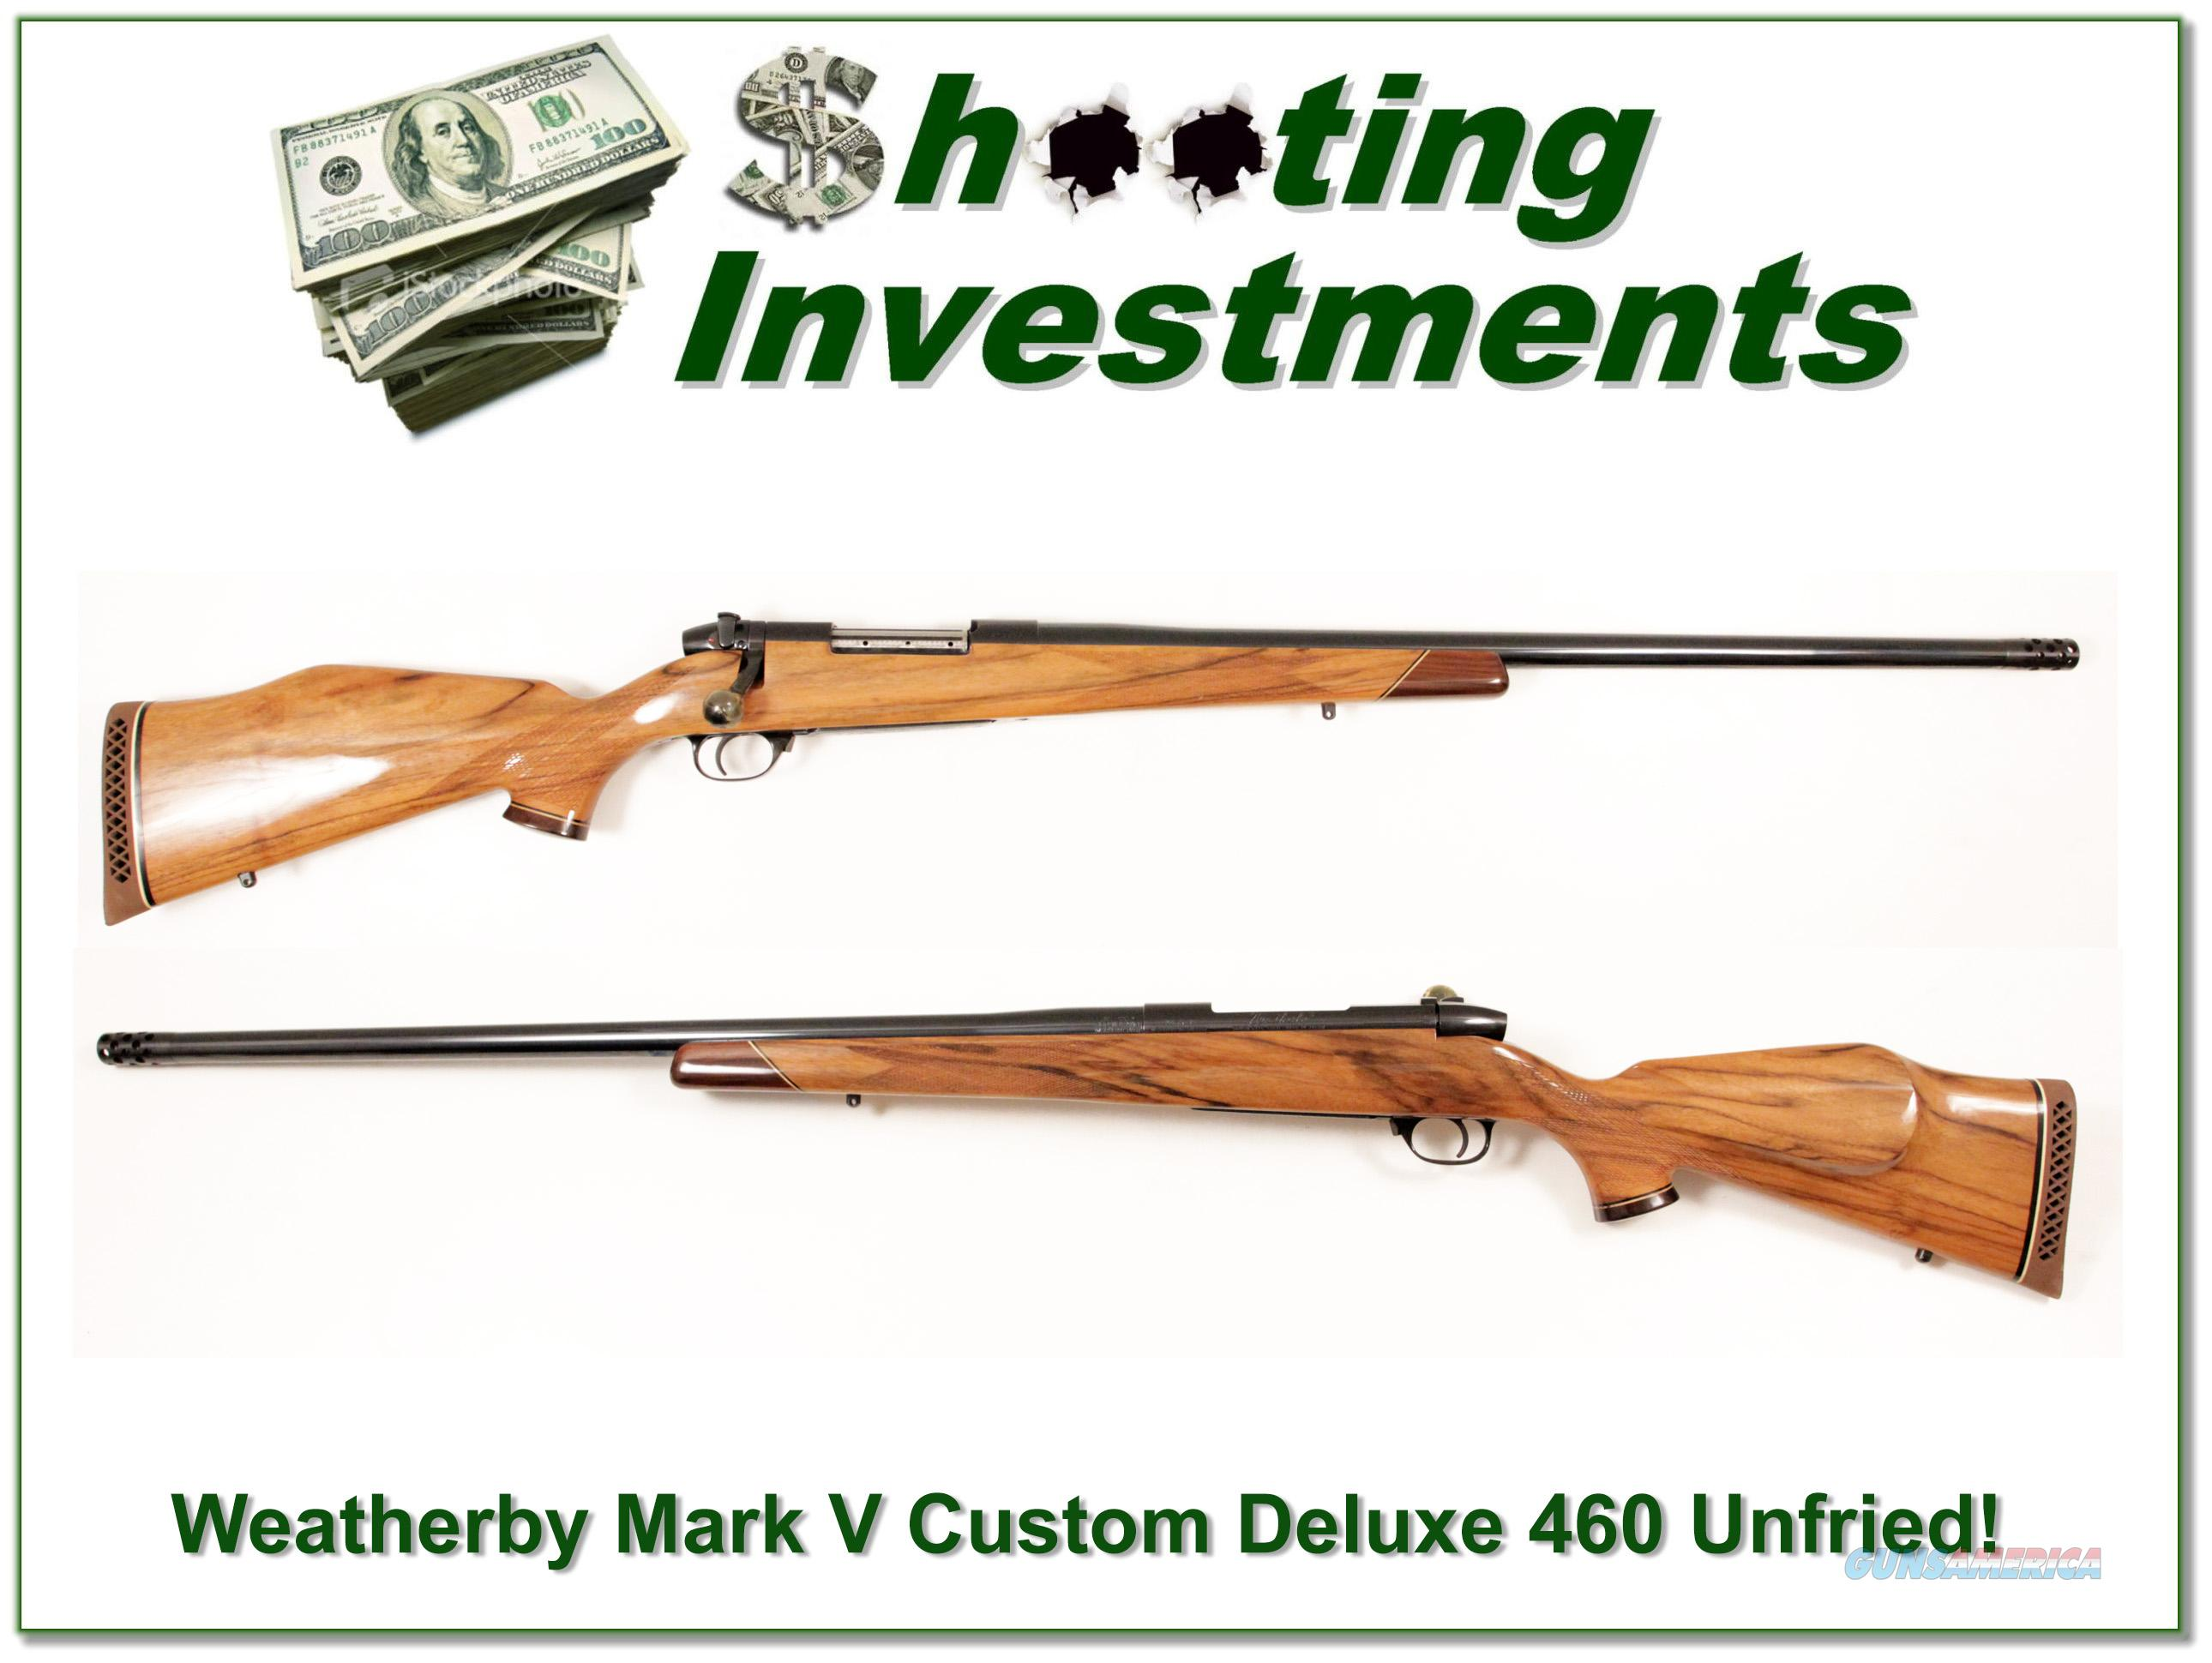 Weatherby Mark V Custom Shop 460 unfired!  Guns > Rifles > Weatherby Rifles > Sporting